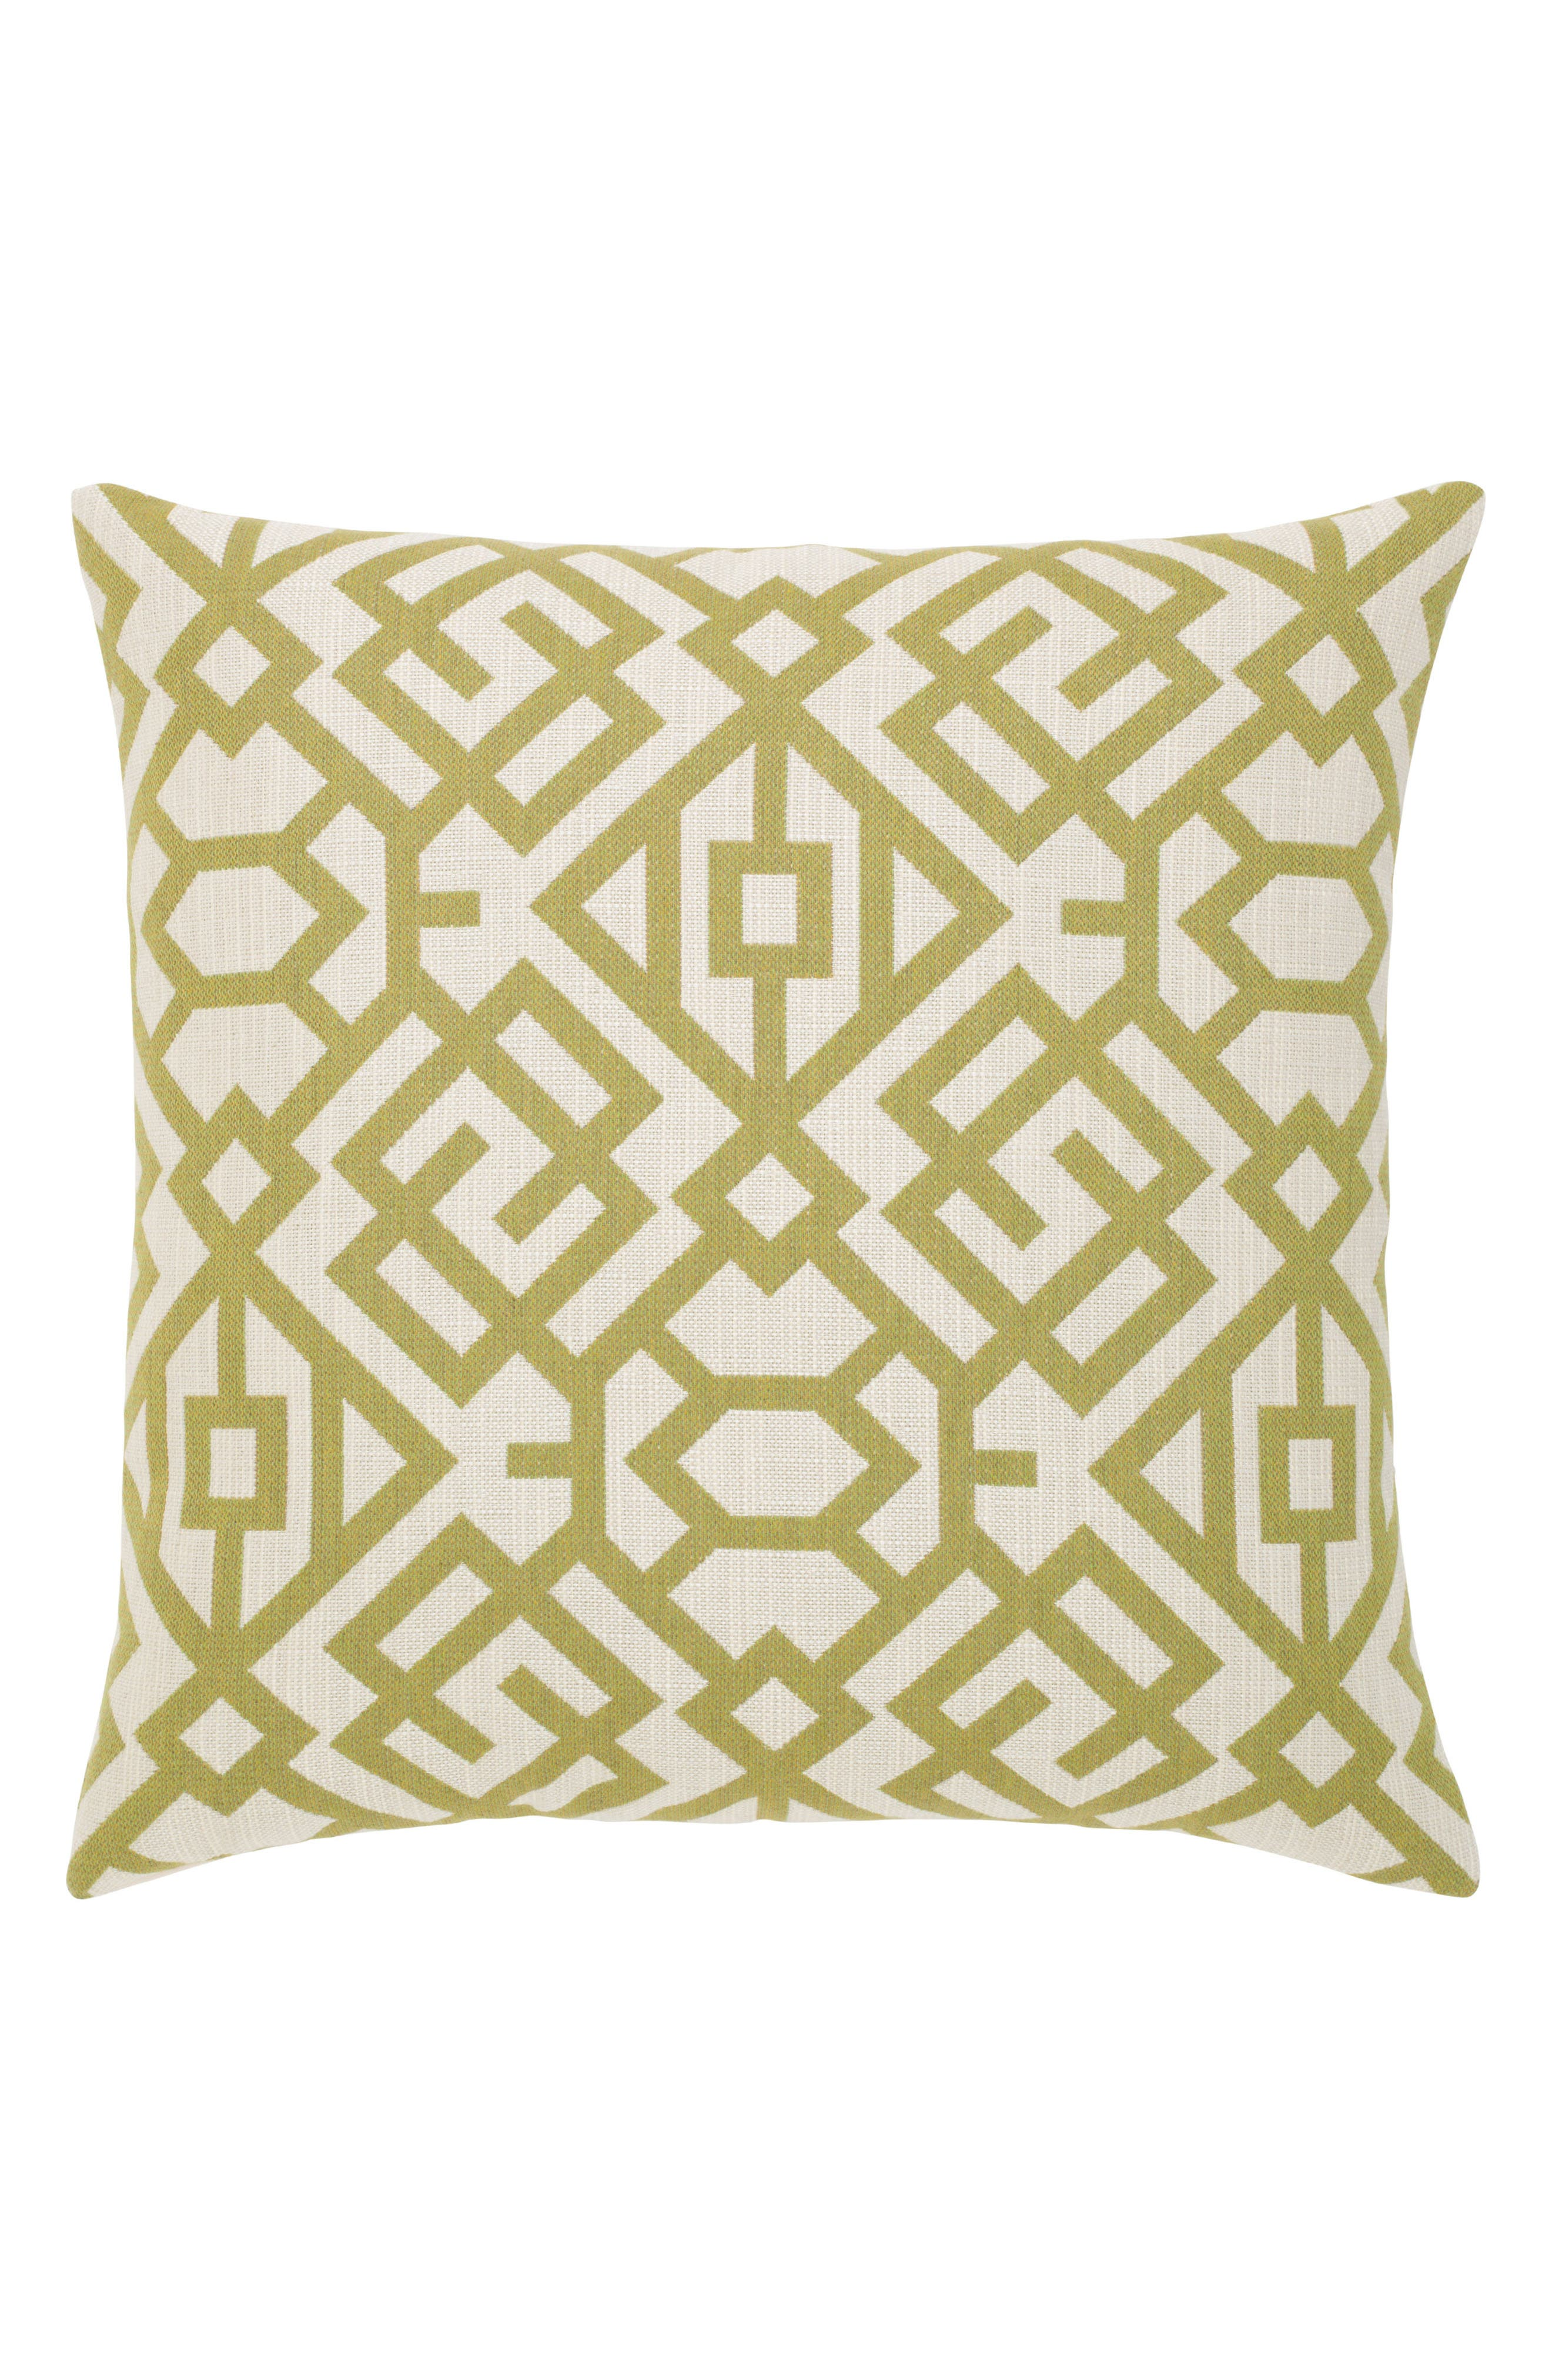 Fern Gate Indoor/Outdoor Accent Pillow,                             Main thumbnail 1, color,                             Green